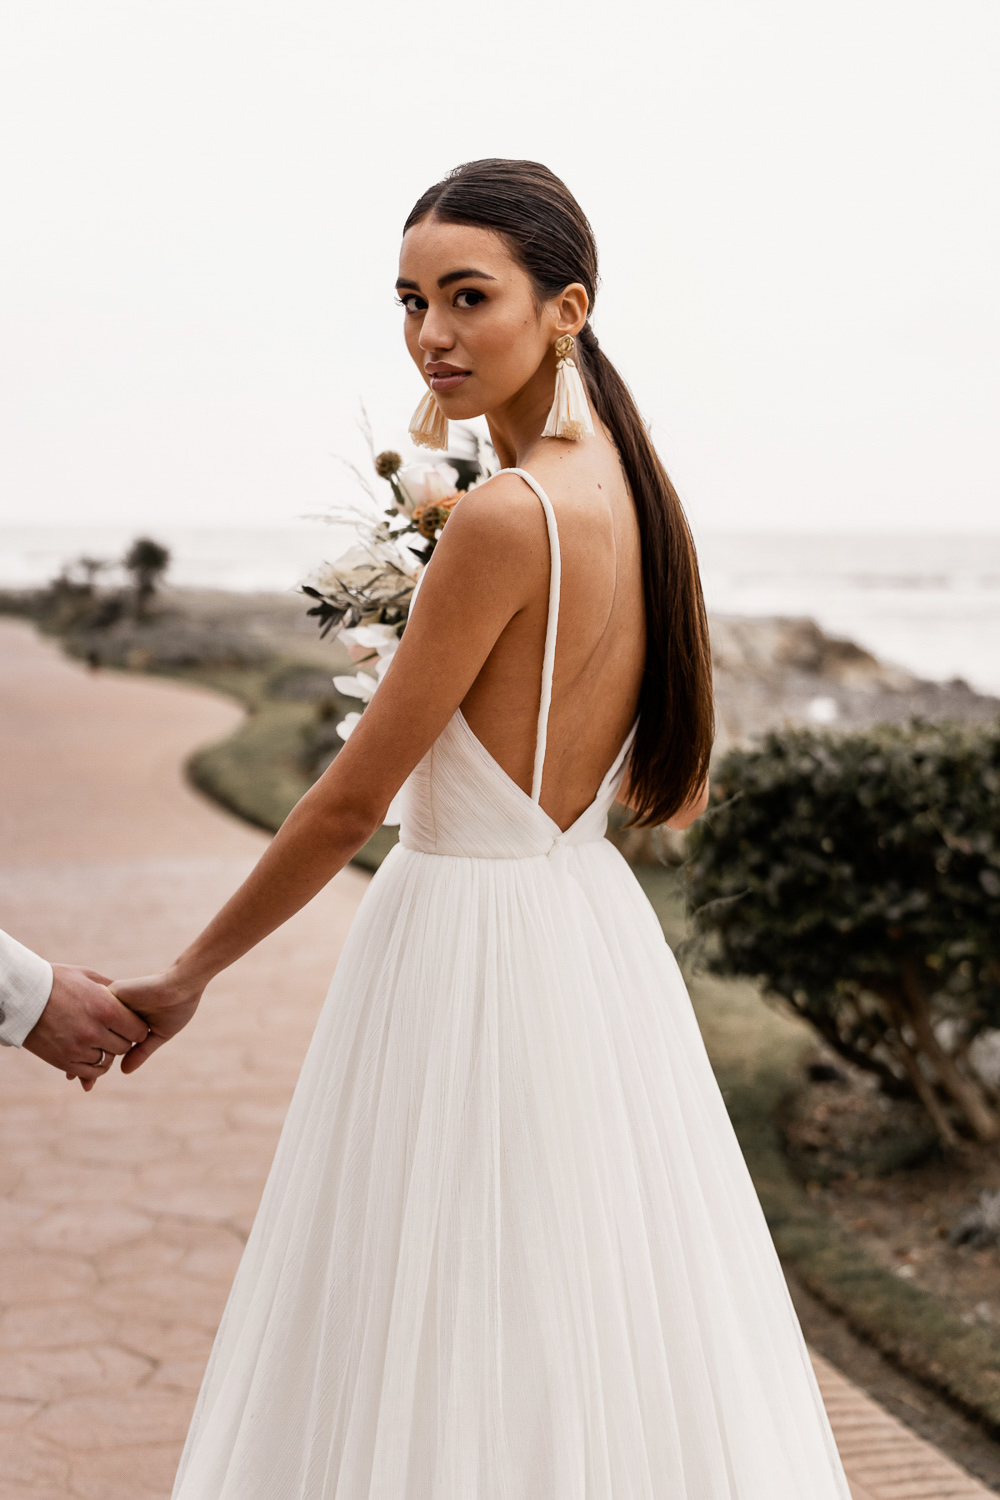 Ponytail Hair Dress Gown Bride Bridal Straps Skirt Marbella Elopement Wedding Nora Photography